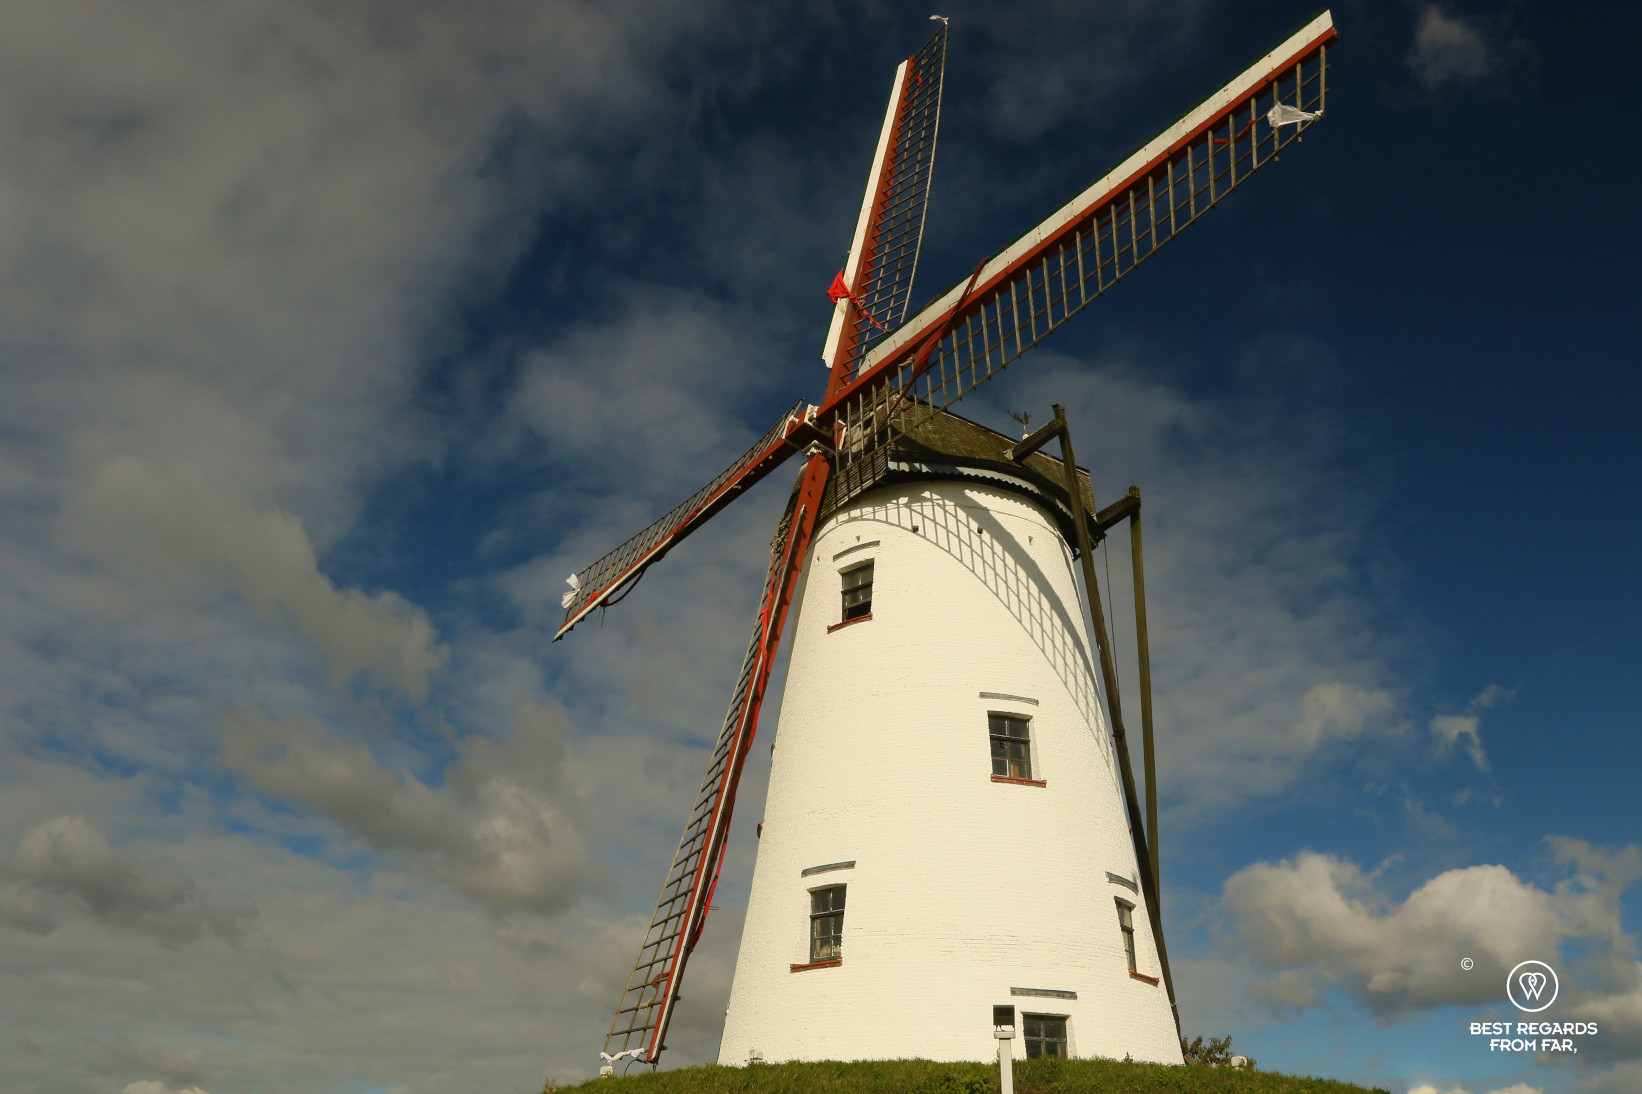 Biking from Bruges to Damme and passing by a traditional windmill, Belgium